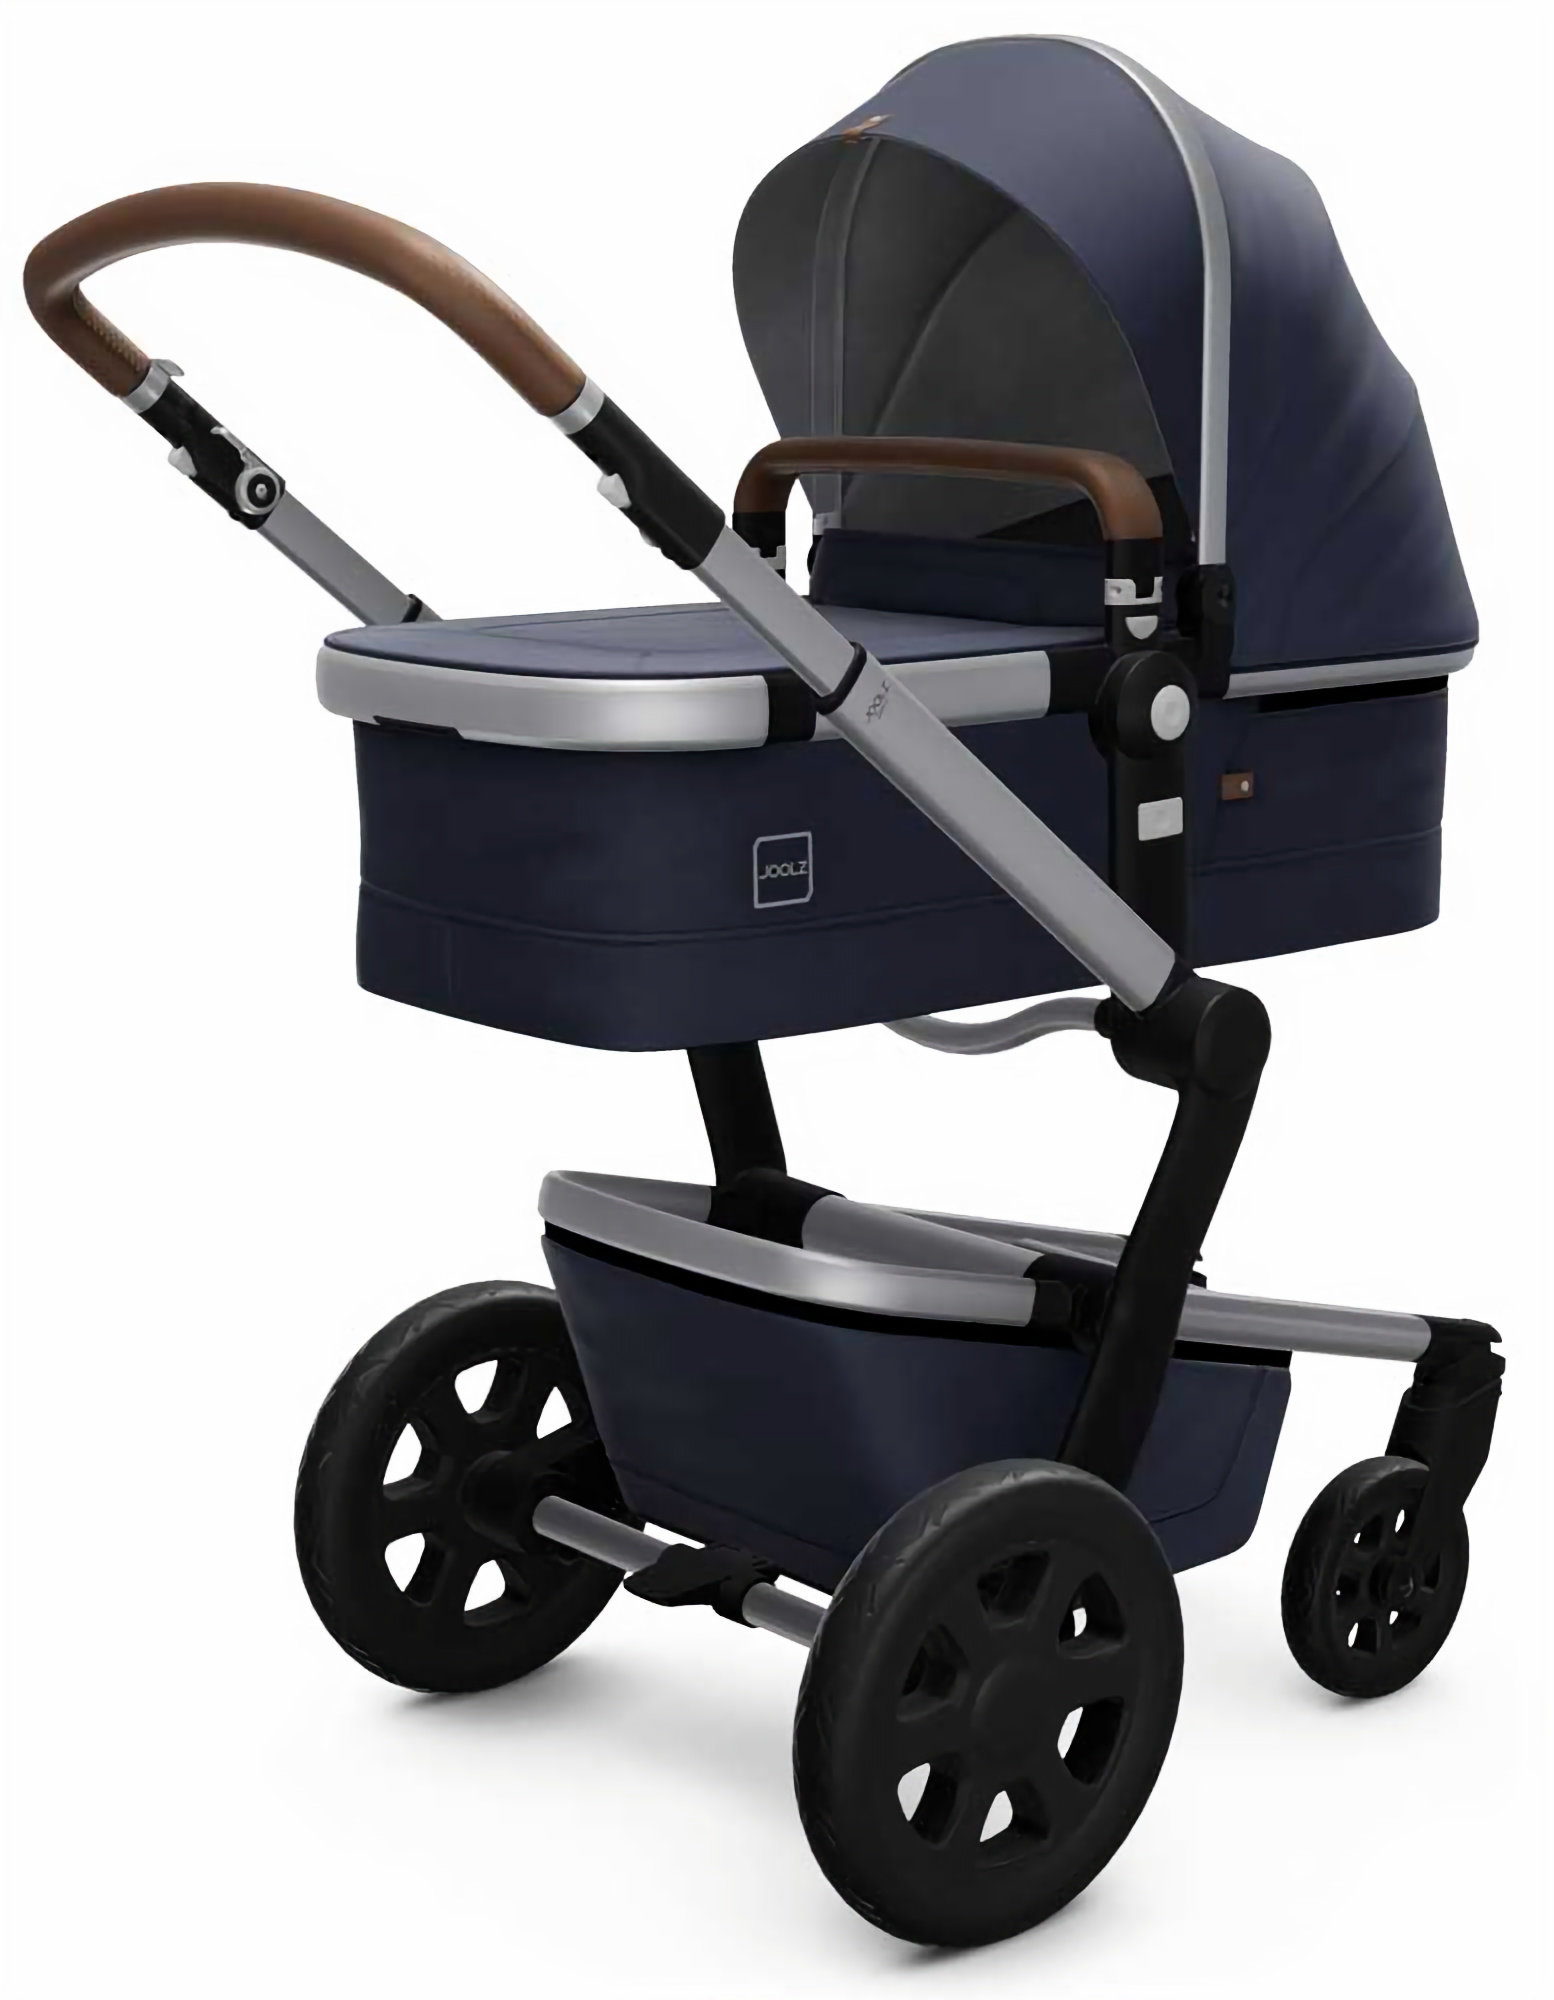 The Joolz Stroller Joolz Day 3 Pram Set 7 In 1 With Joolz Baby Car Seat 2019